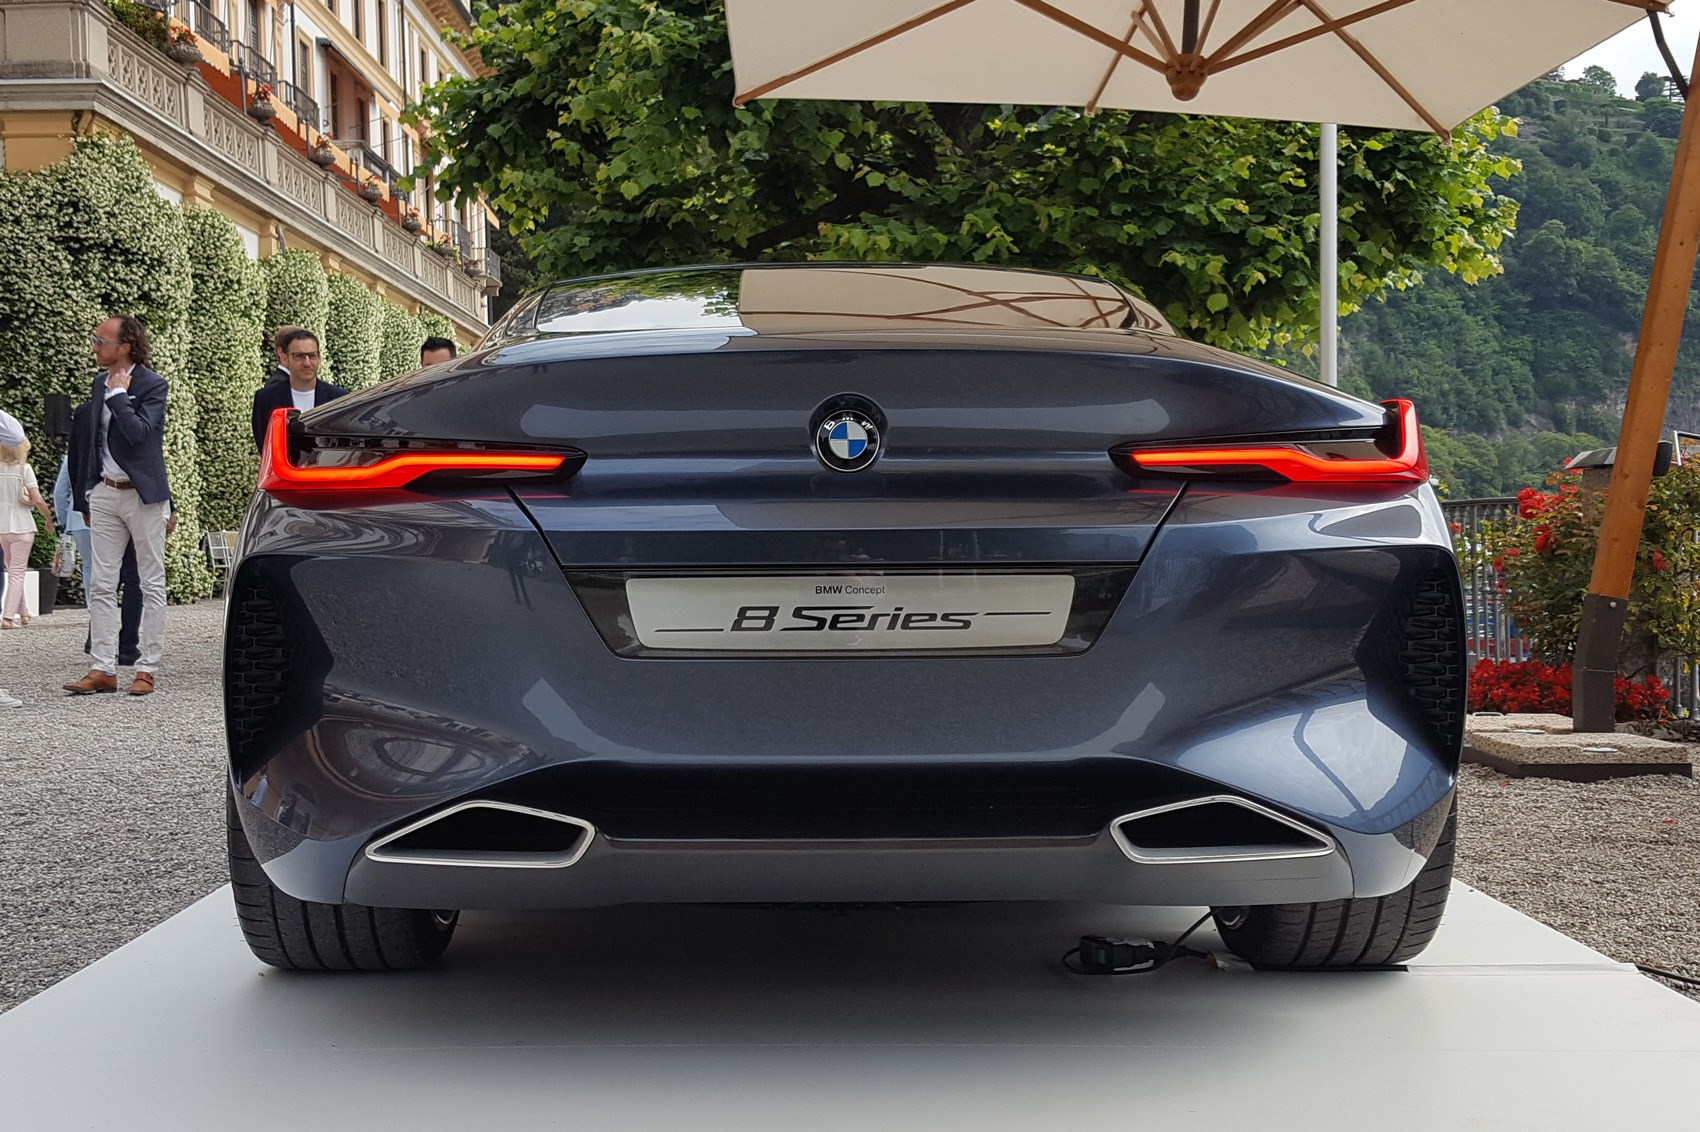 It's back! BMW Concept 8-series previews new plush coupe ...